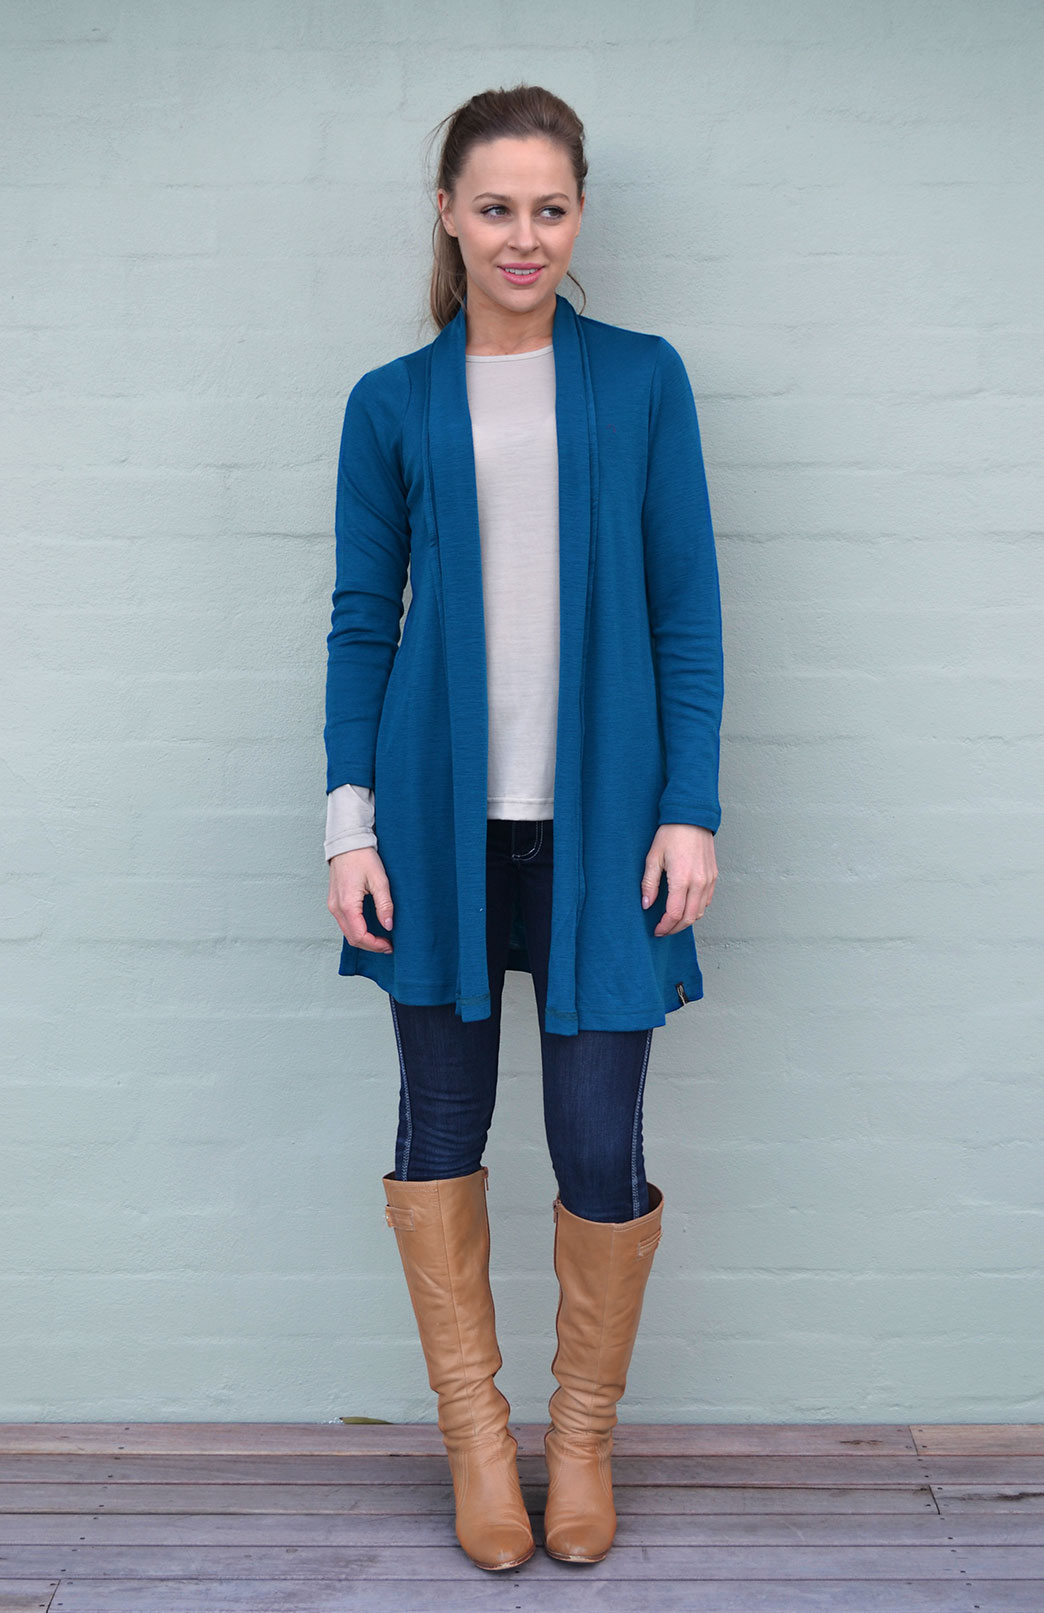 Drape Cardigan - Women's Teal Wool Drape Cardigan with no buttons or fastenings - Smitten Merino Tasmania Australia